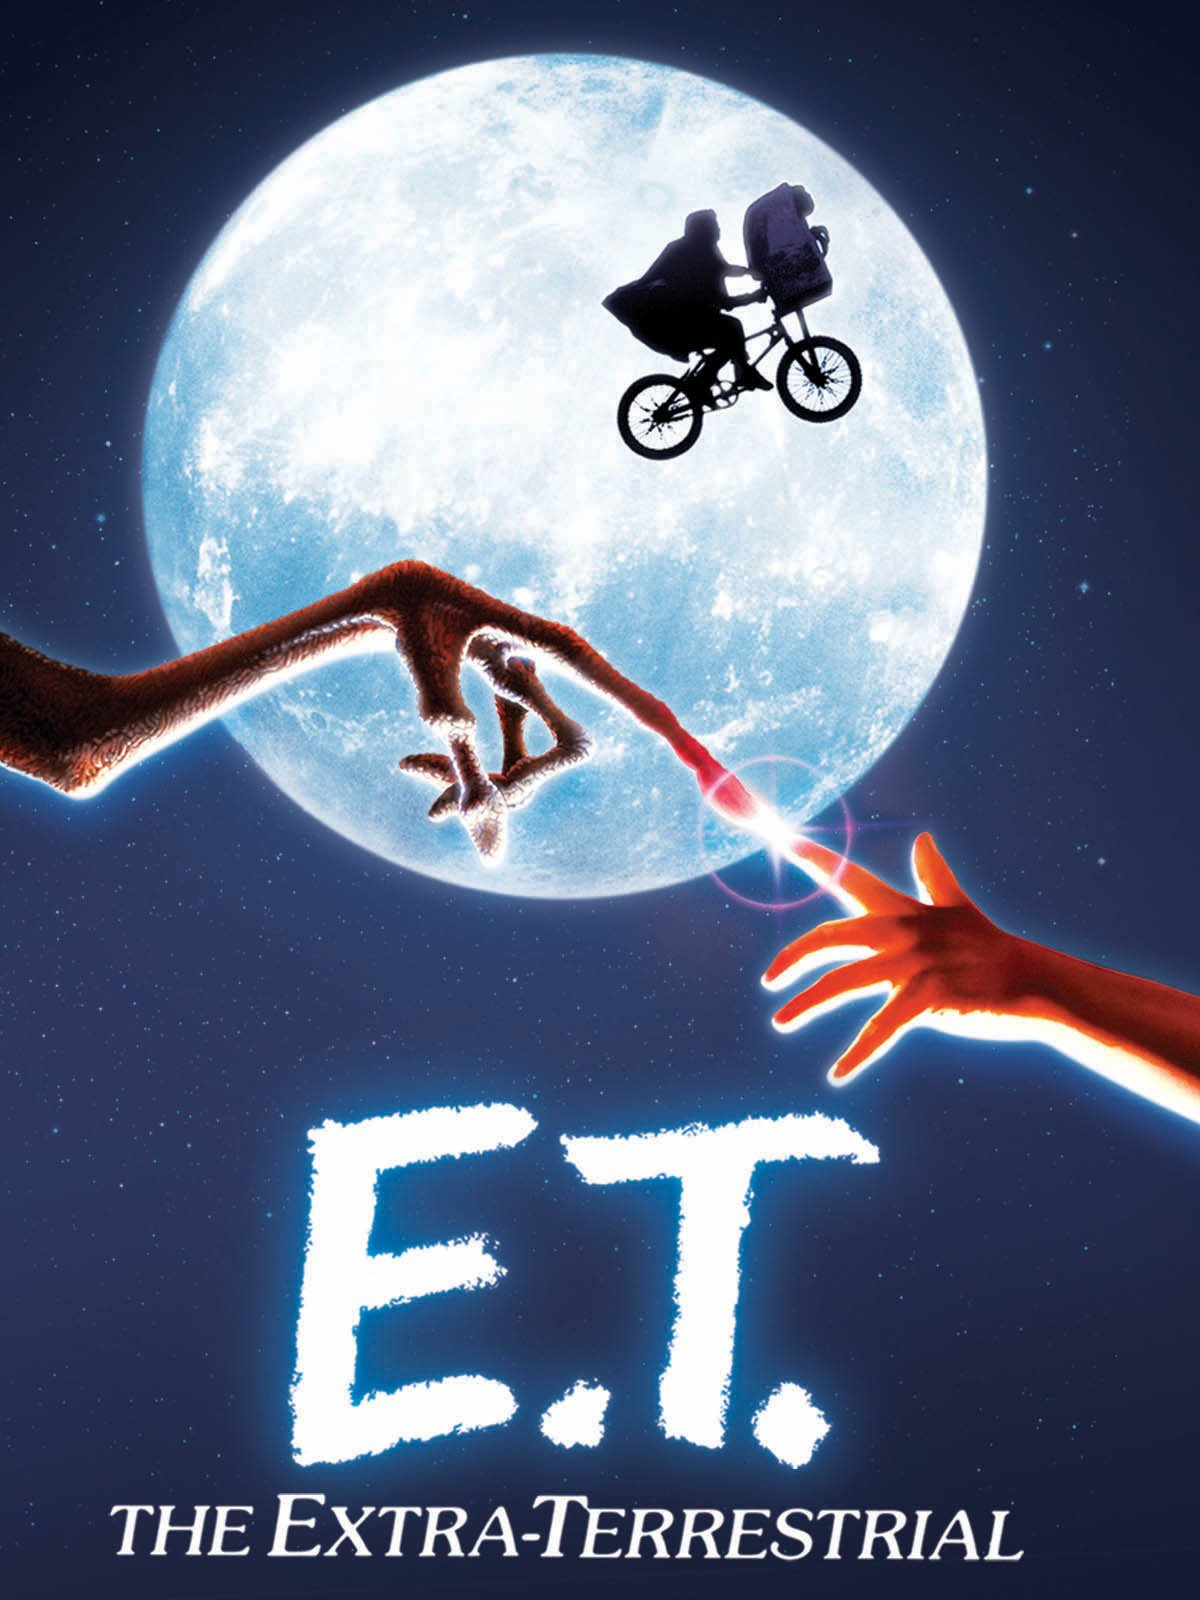 Amazon.com: E.T.,The Extra-Terrestrial: Henry Thomas, Dee Wallace, Peter Coyote, Drew Barrymore